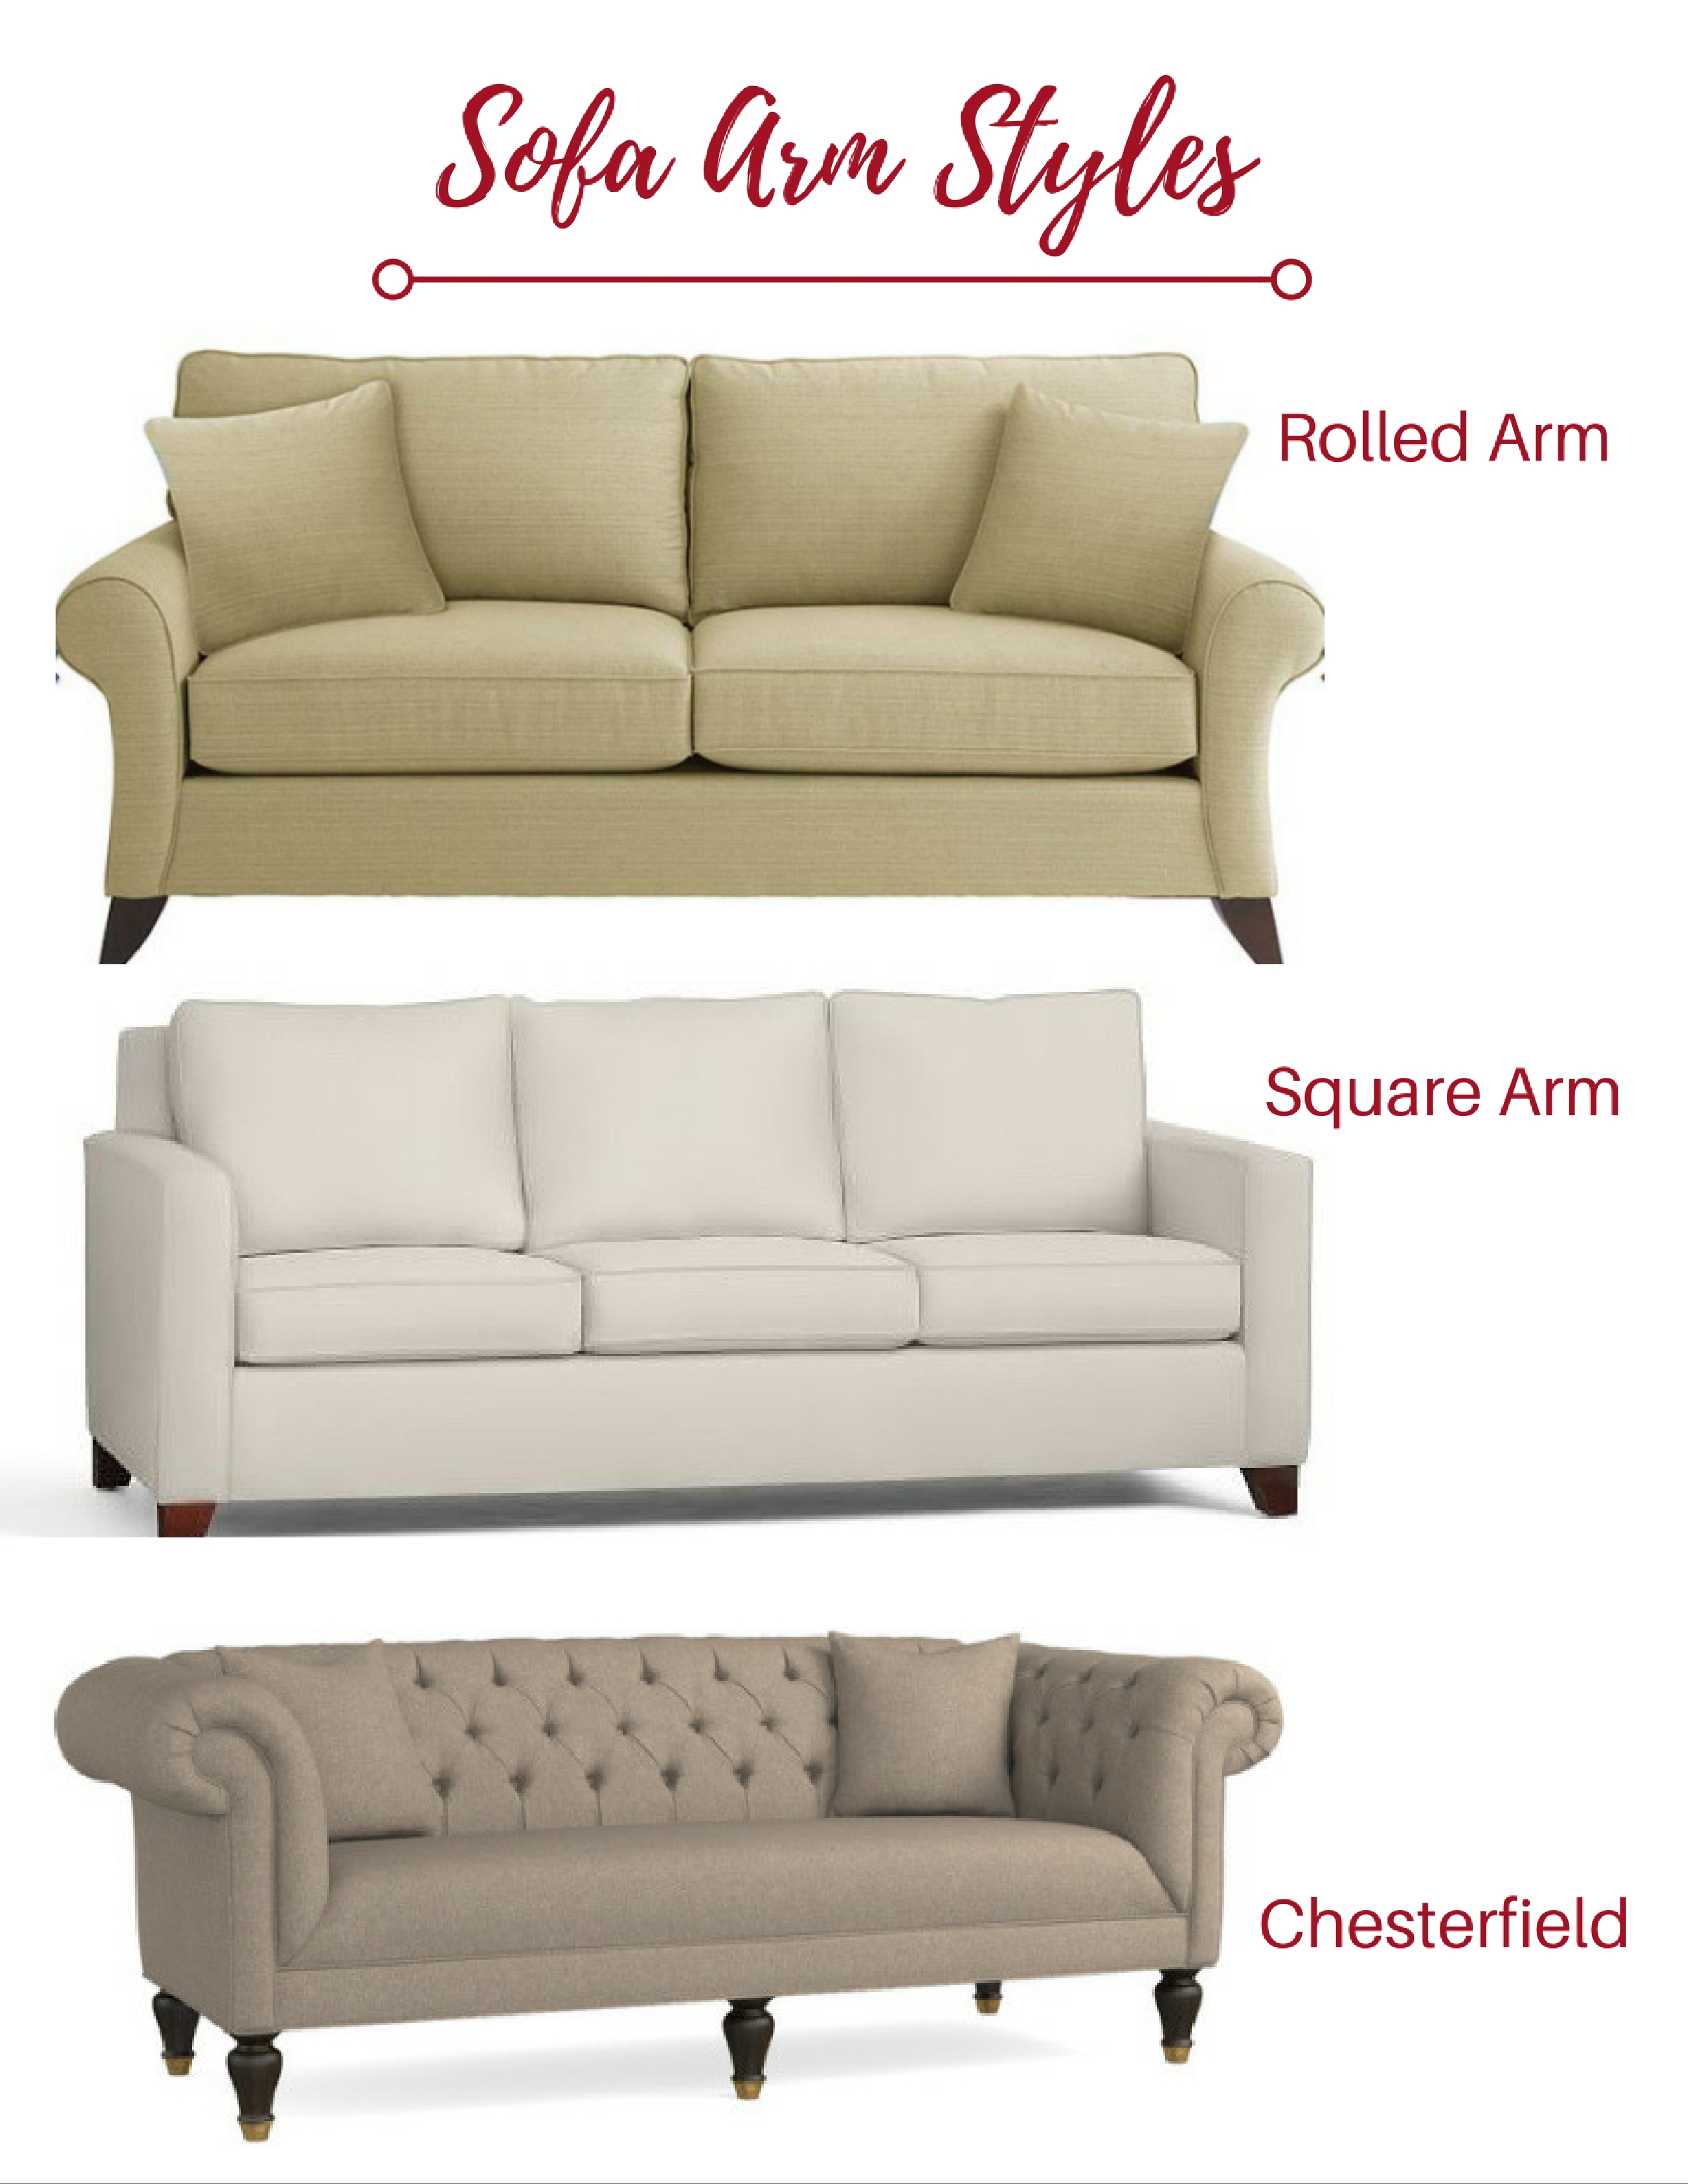 how to clean sofa arms bed with retractable cup holder design guide shopping for the perfect confettistyle